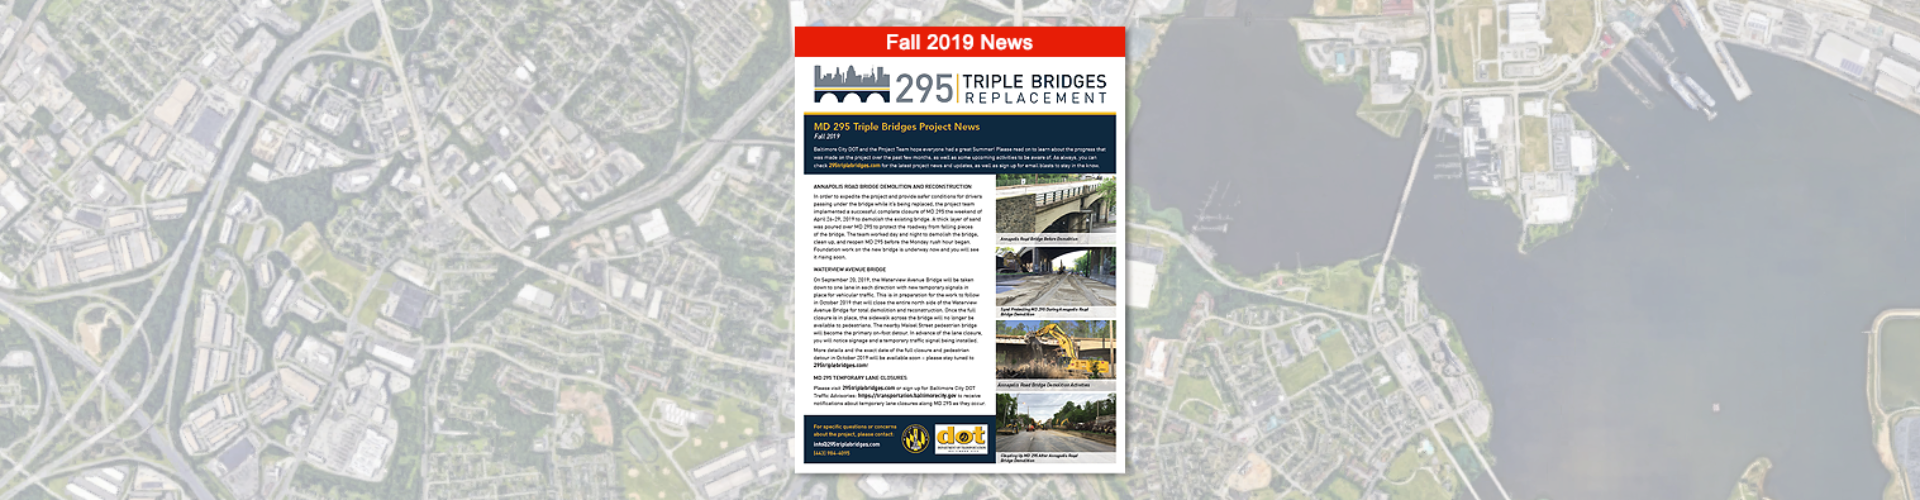 295 Triple Bridges - Fall 2019 Project News